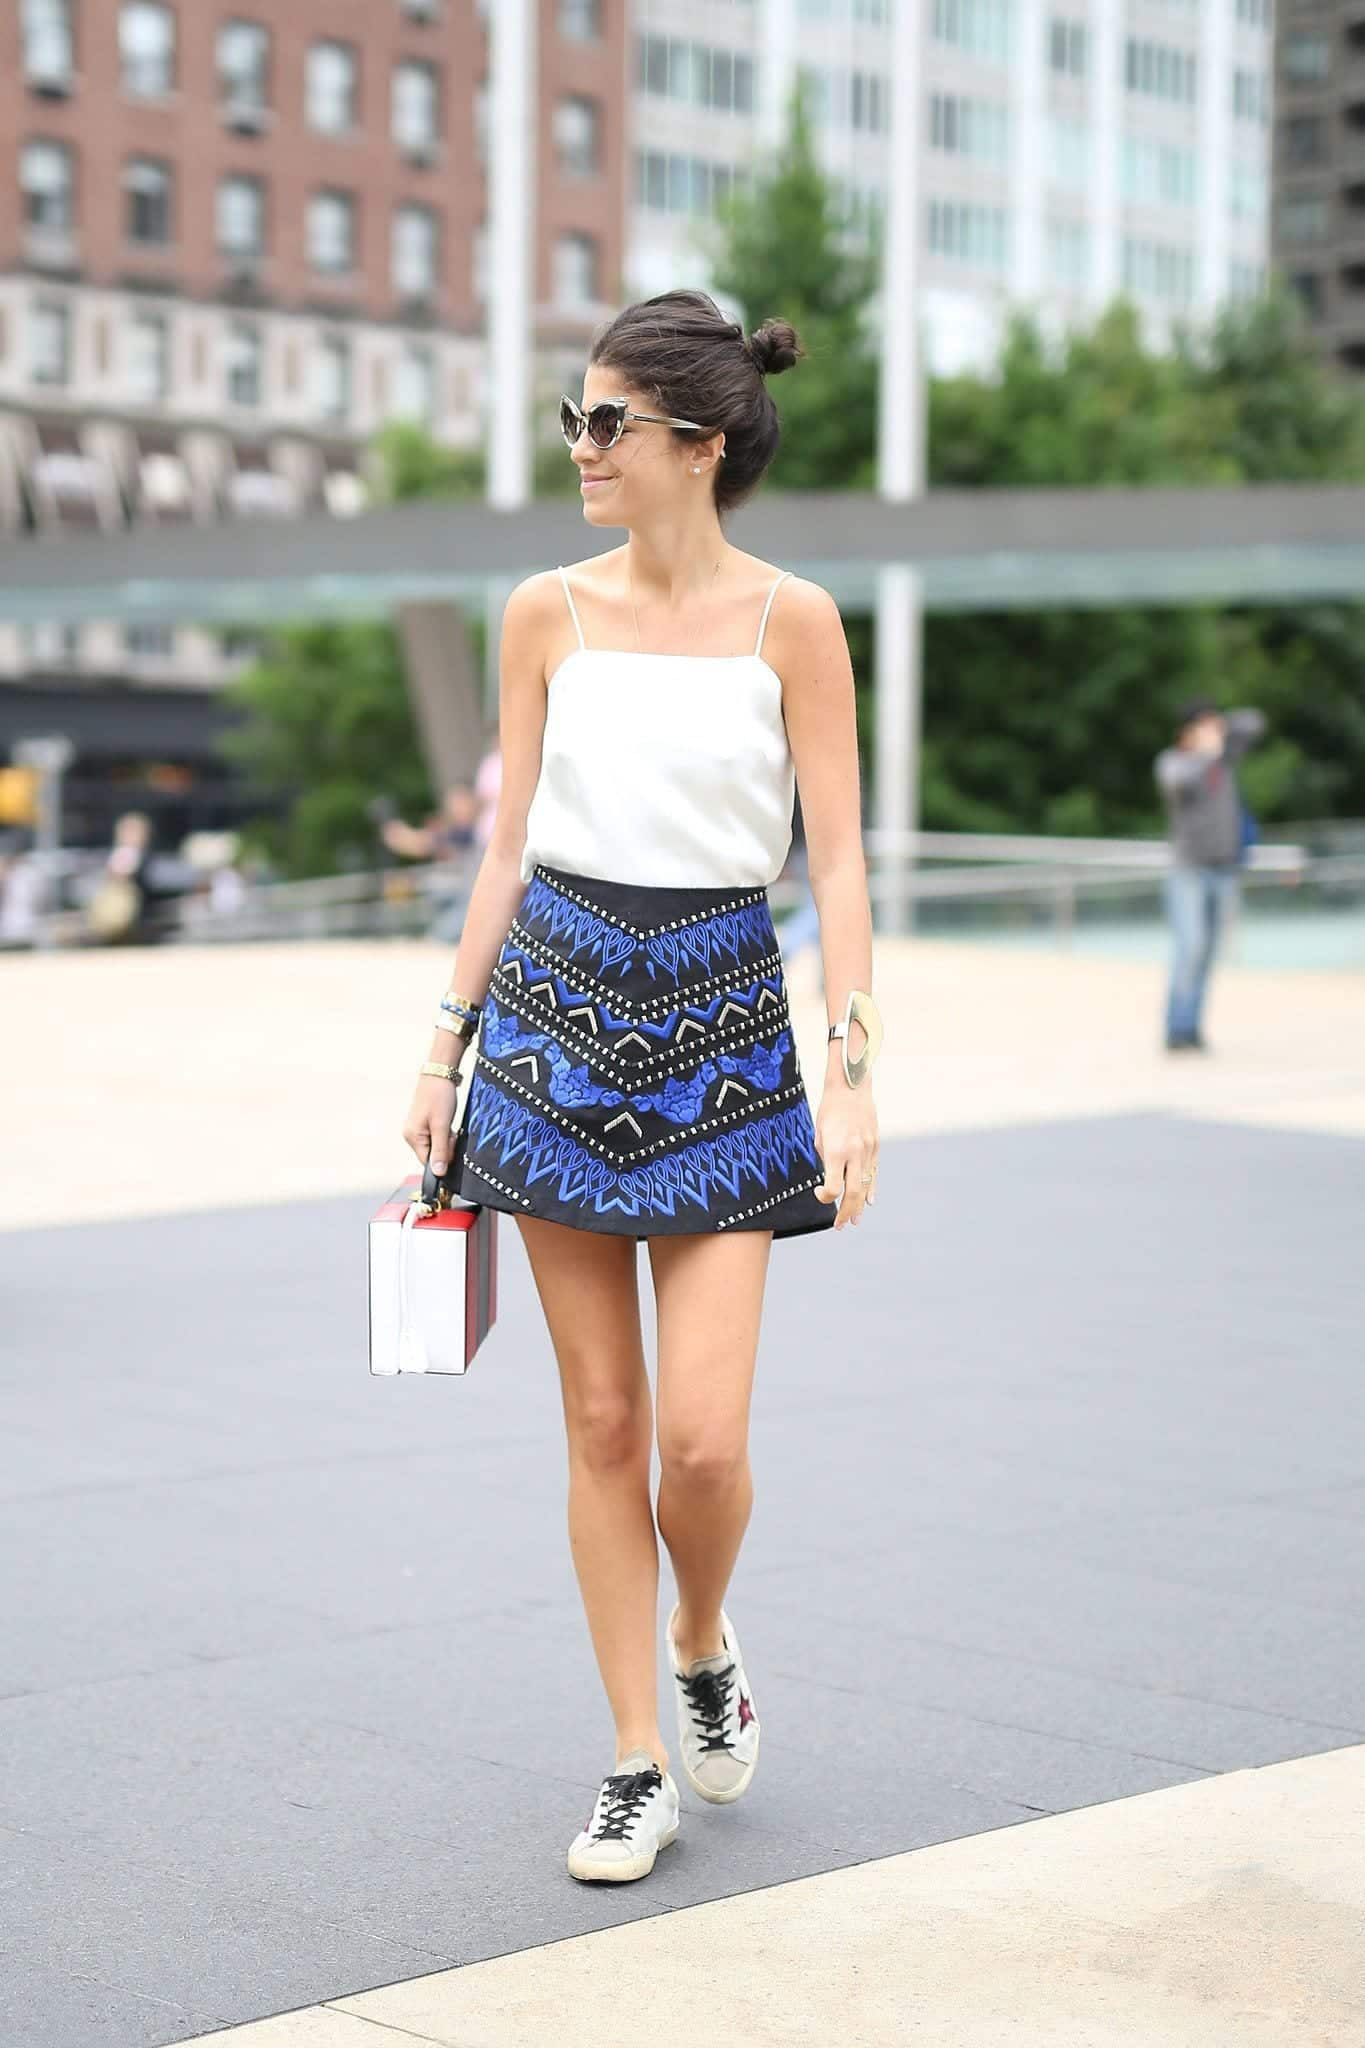 Outfits With Tennis Skirt - 24 Ways To Style Tennis Skirt